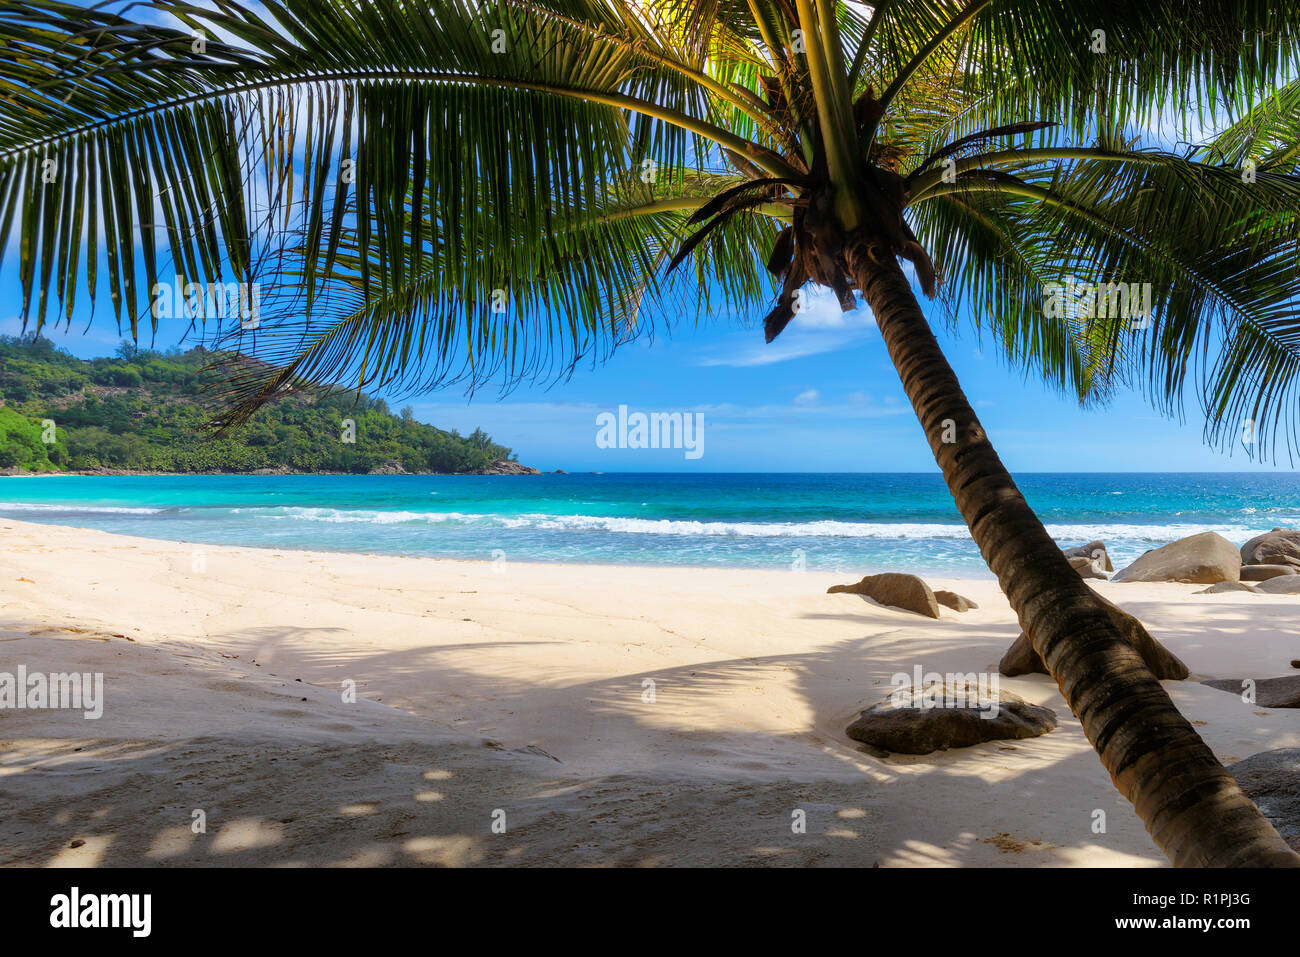 Exotic tropical beach - Stock Image